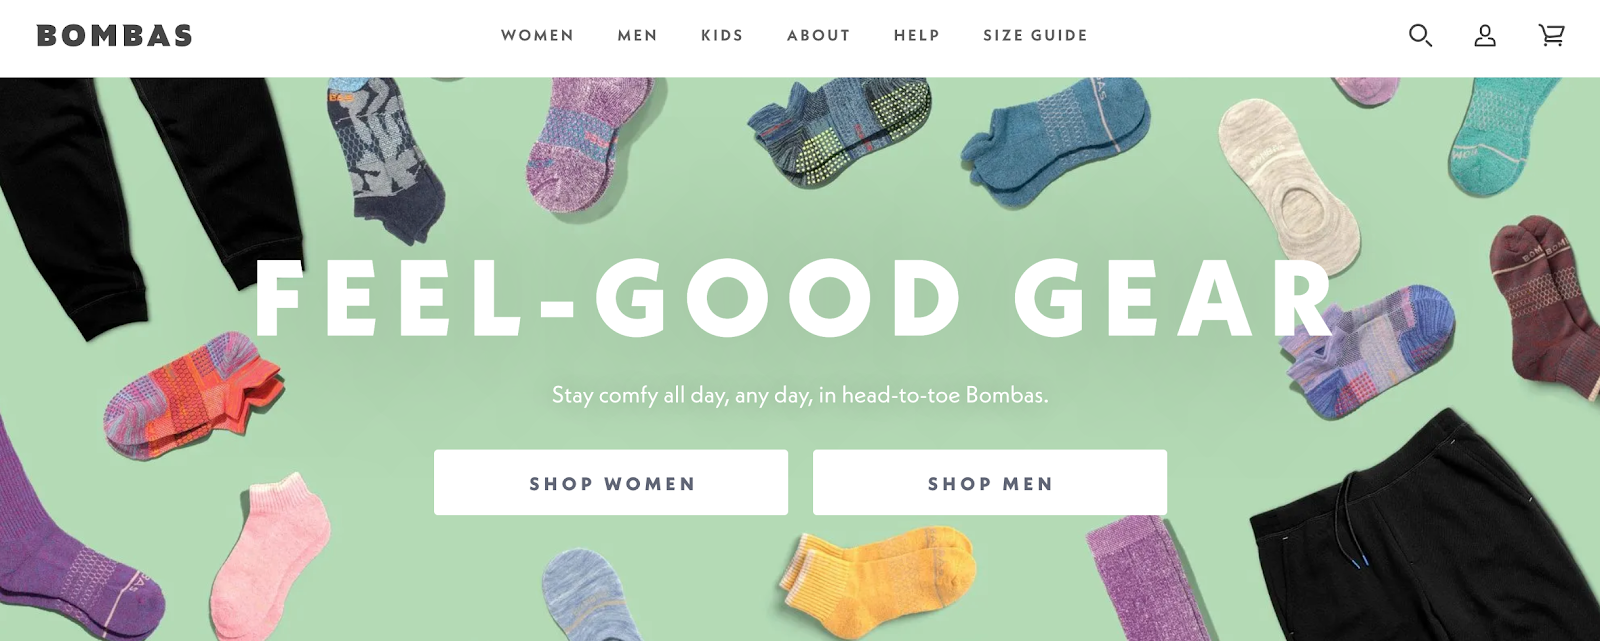 Bombas homepage with various sample socks in the background